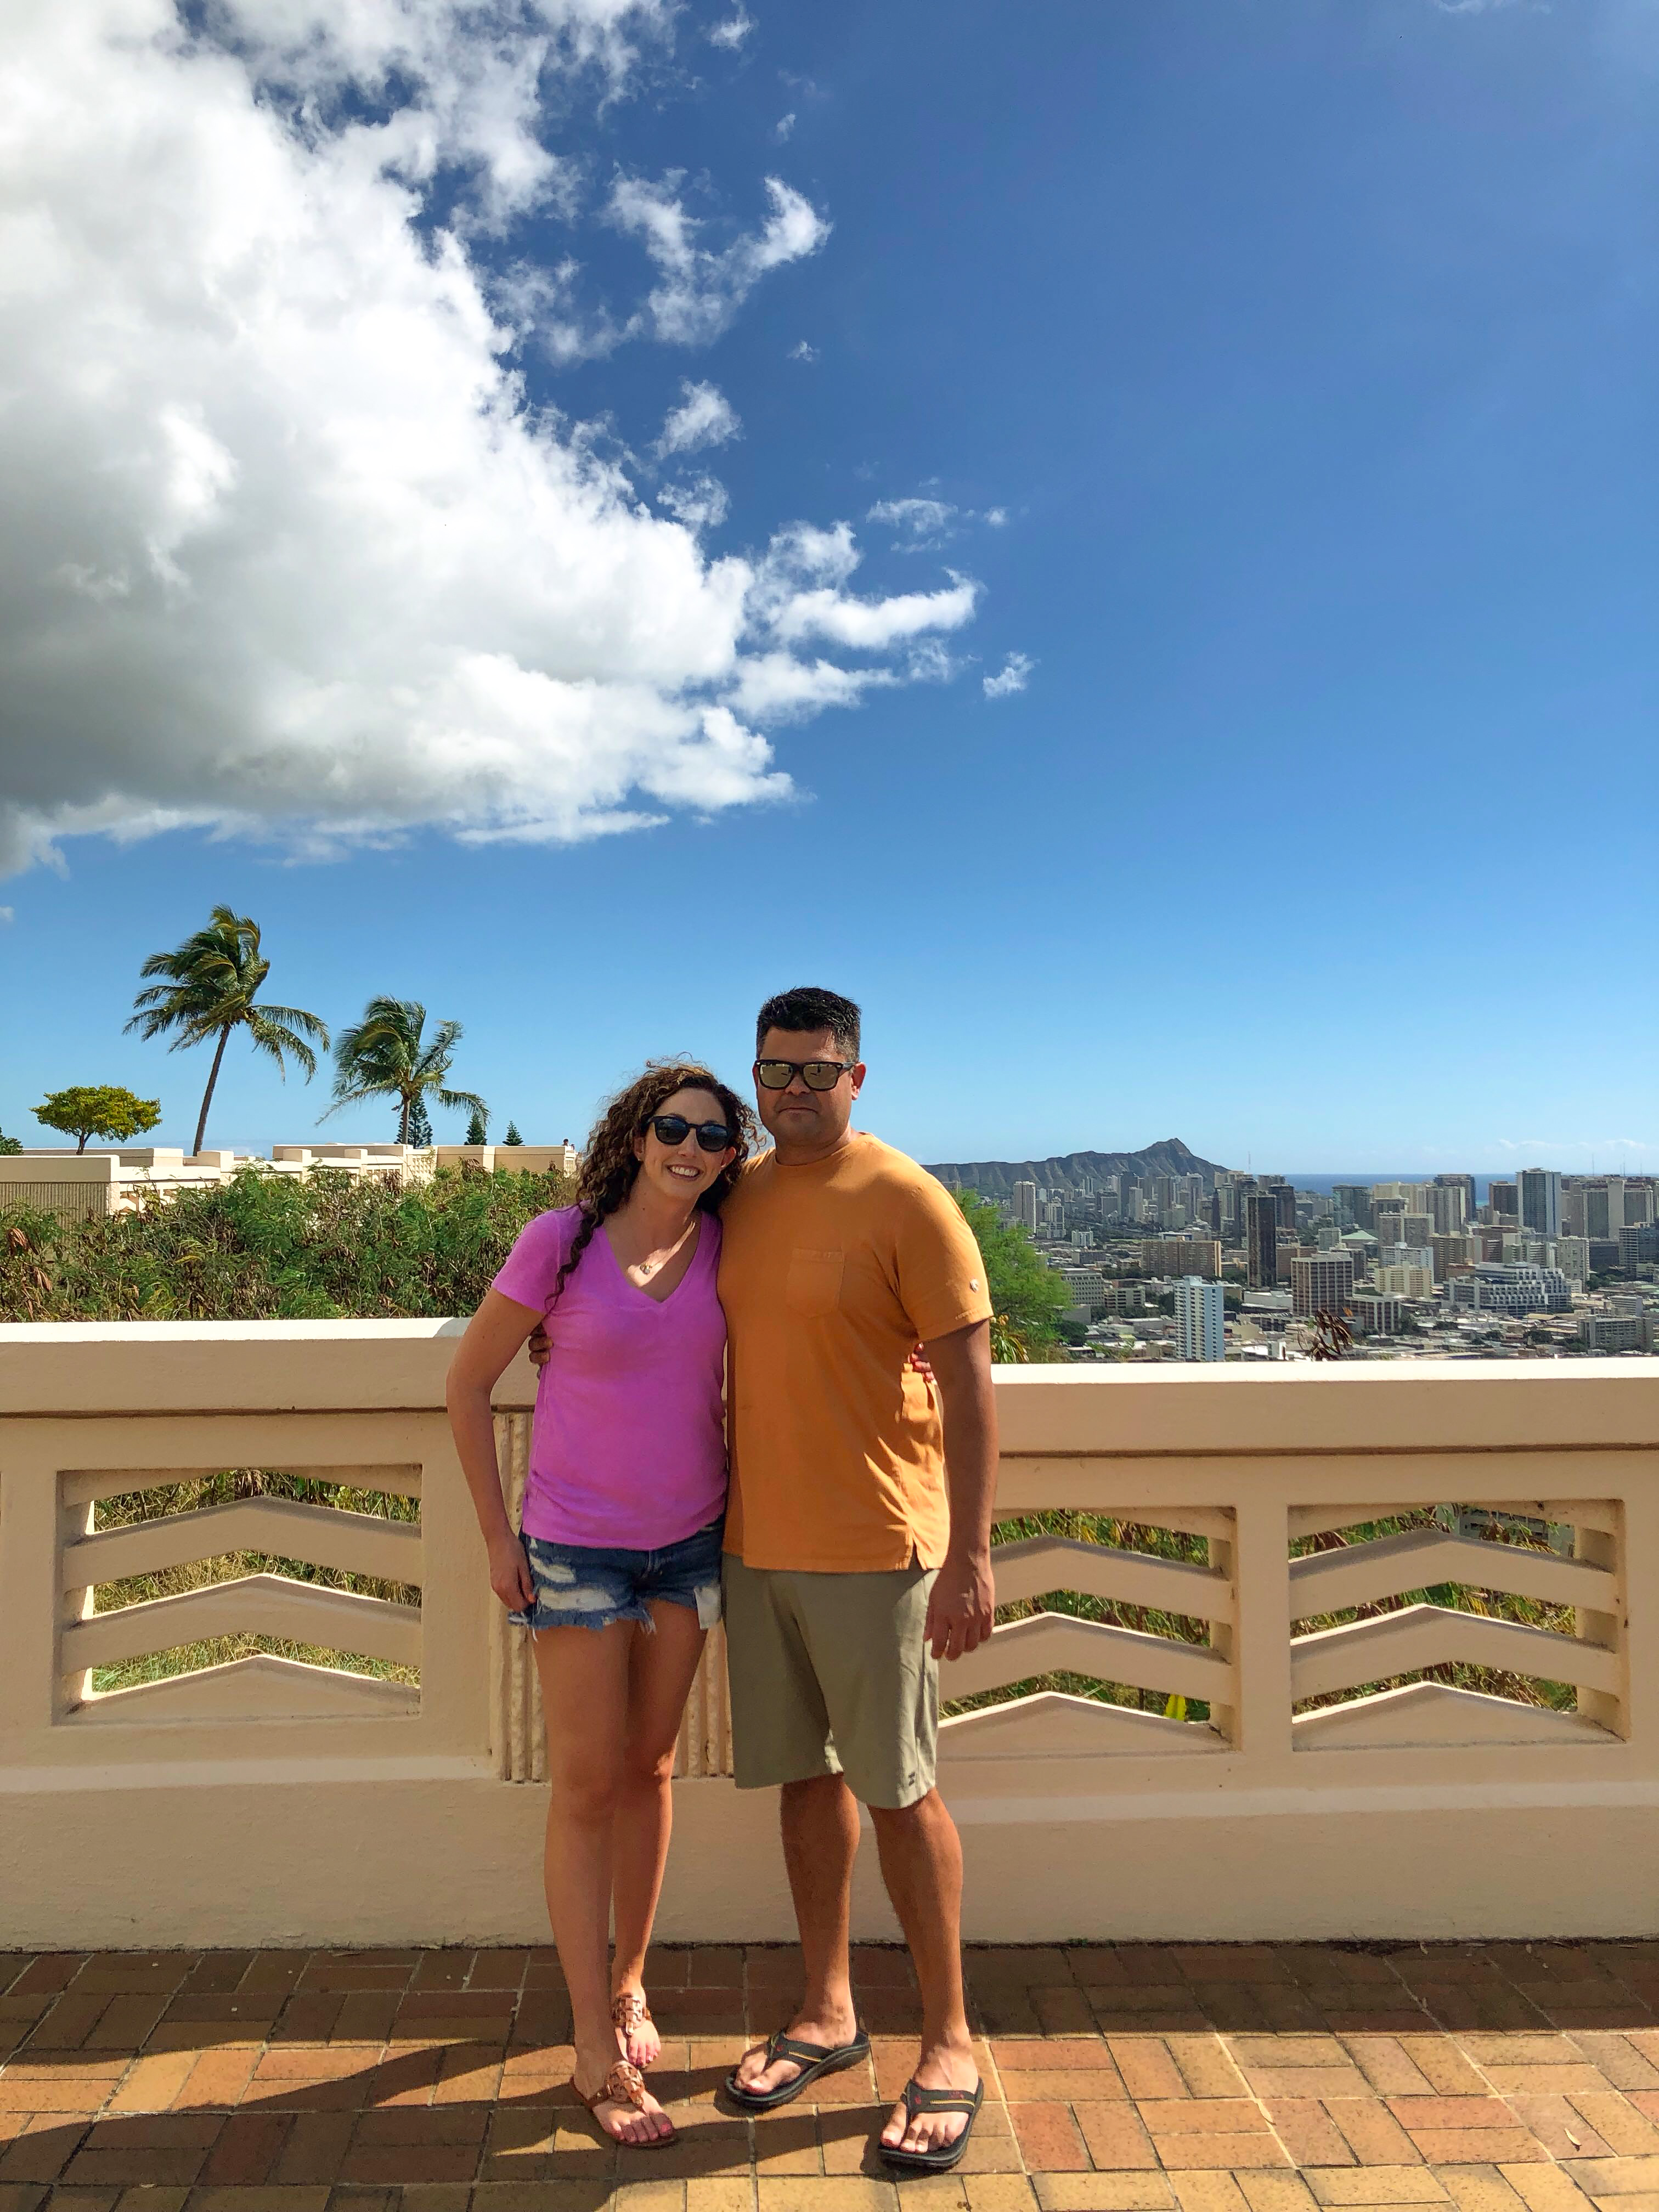 oahu views from the punchbowl